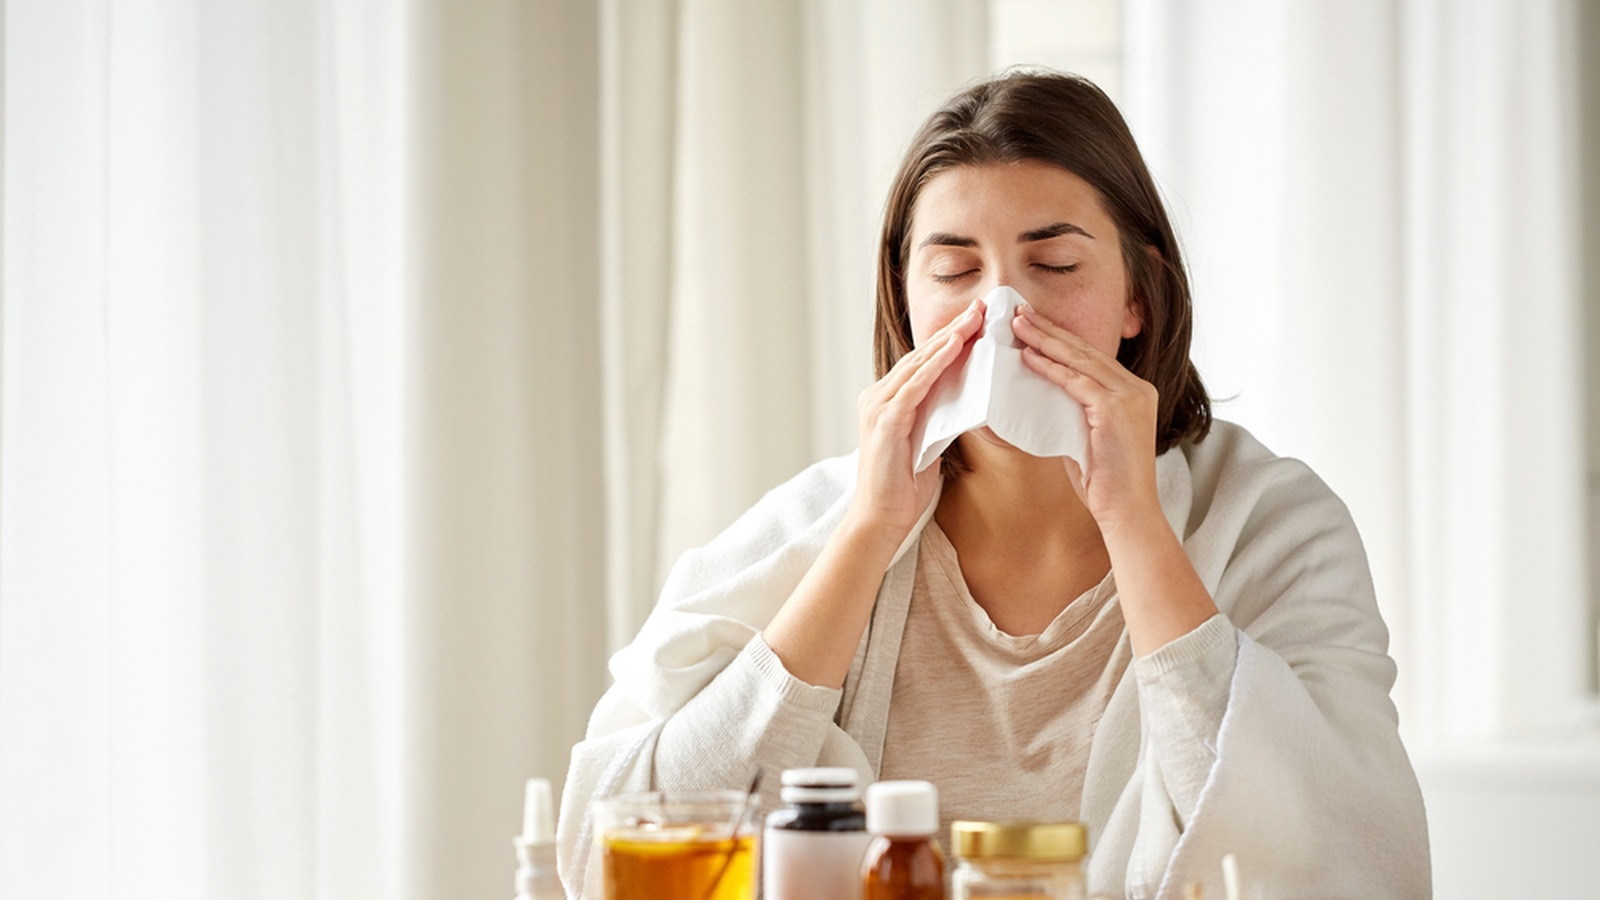 How To Protect Yourself From The Flu This Year